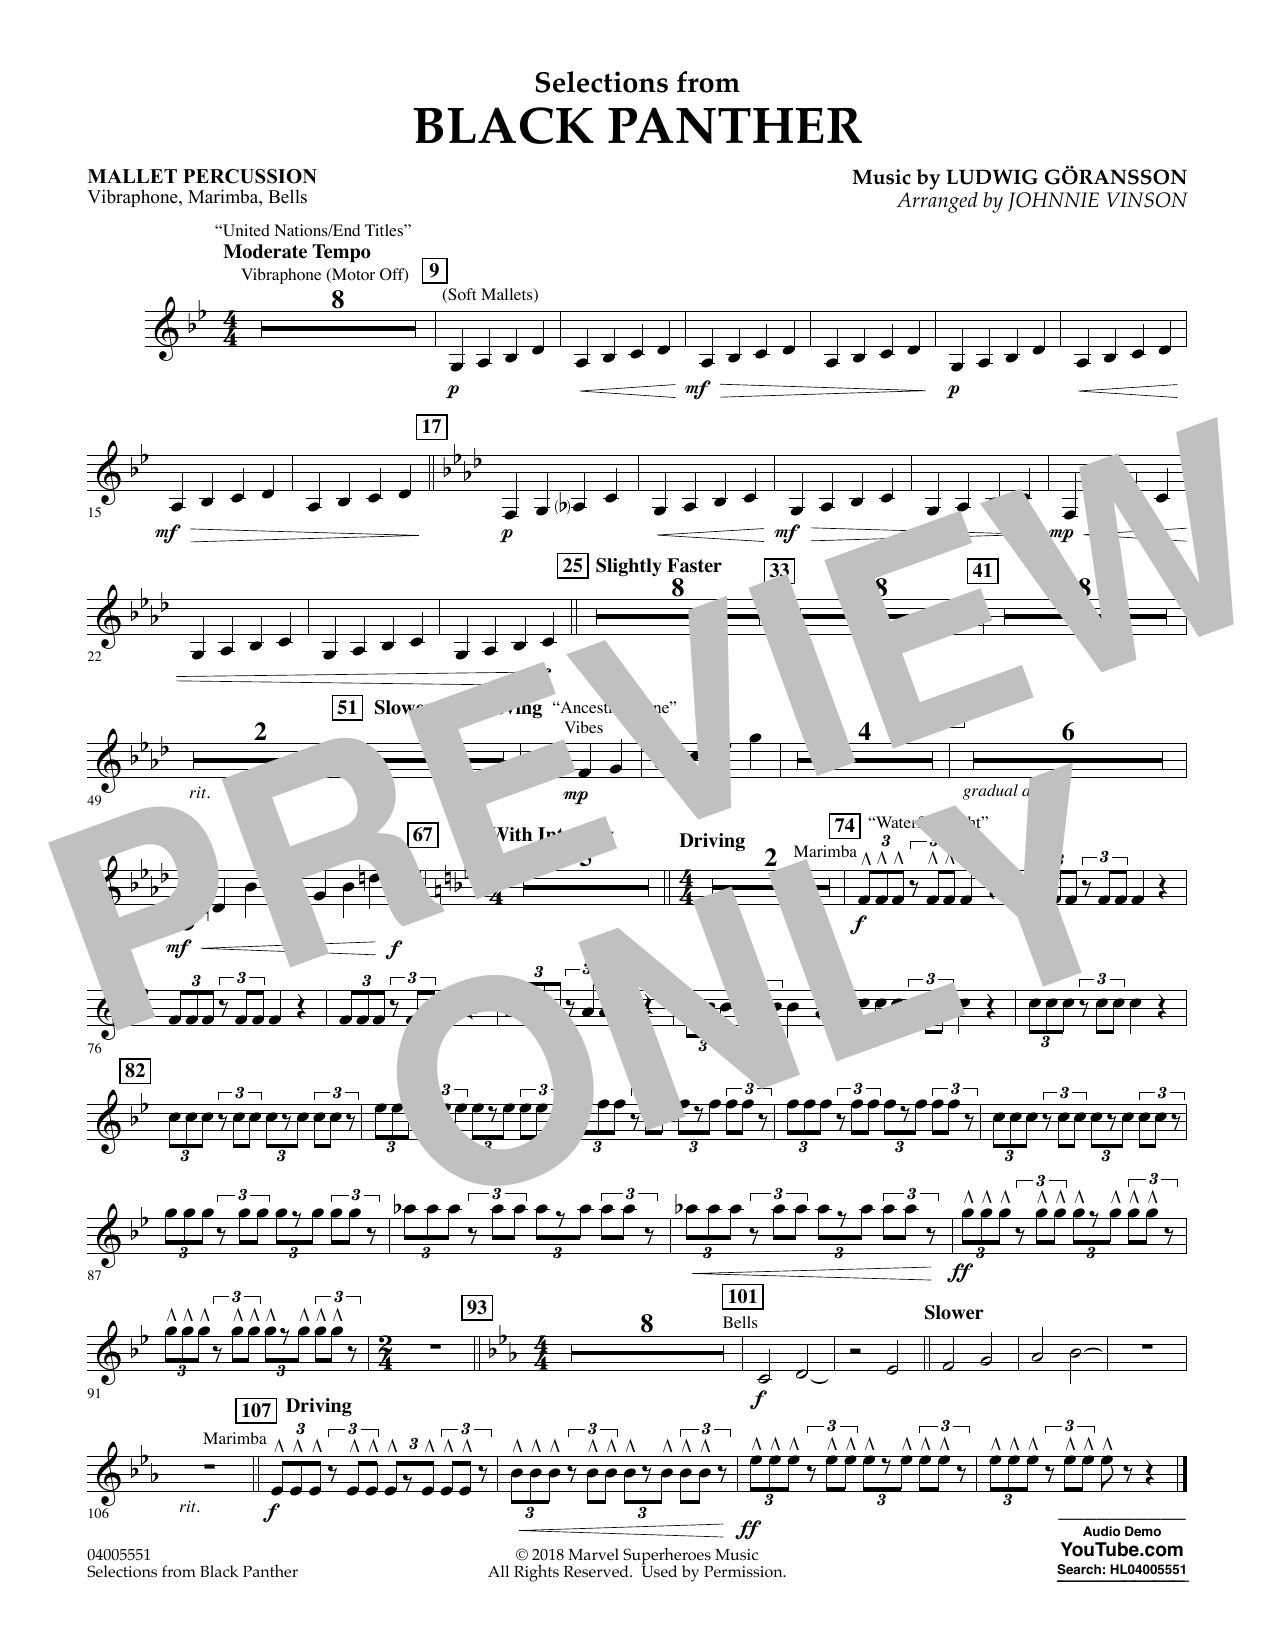 Selections from Black Panther - Mallet Percussion (Flex-Band)